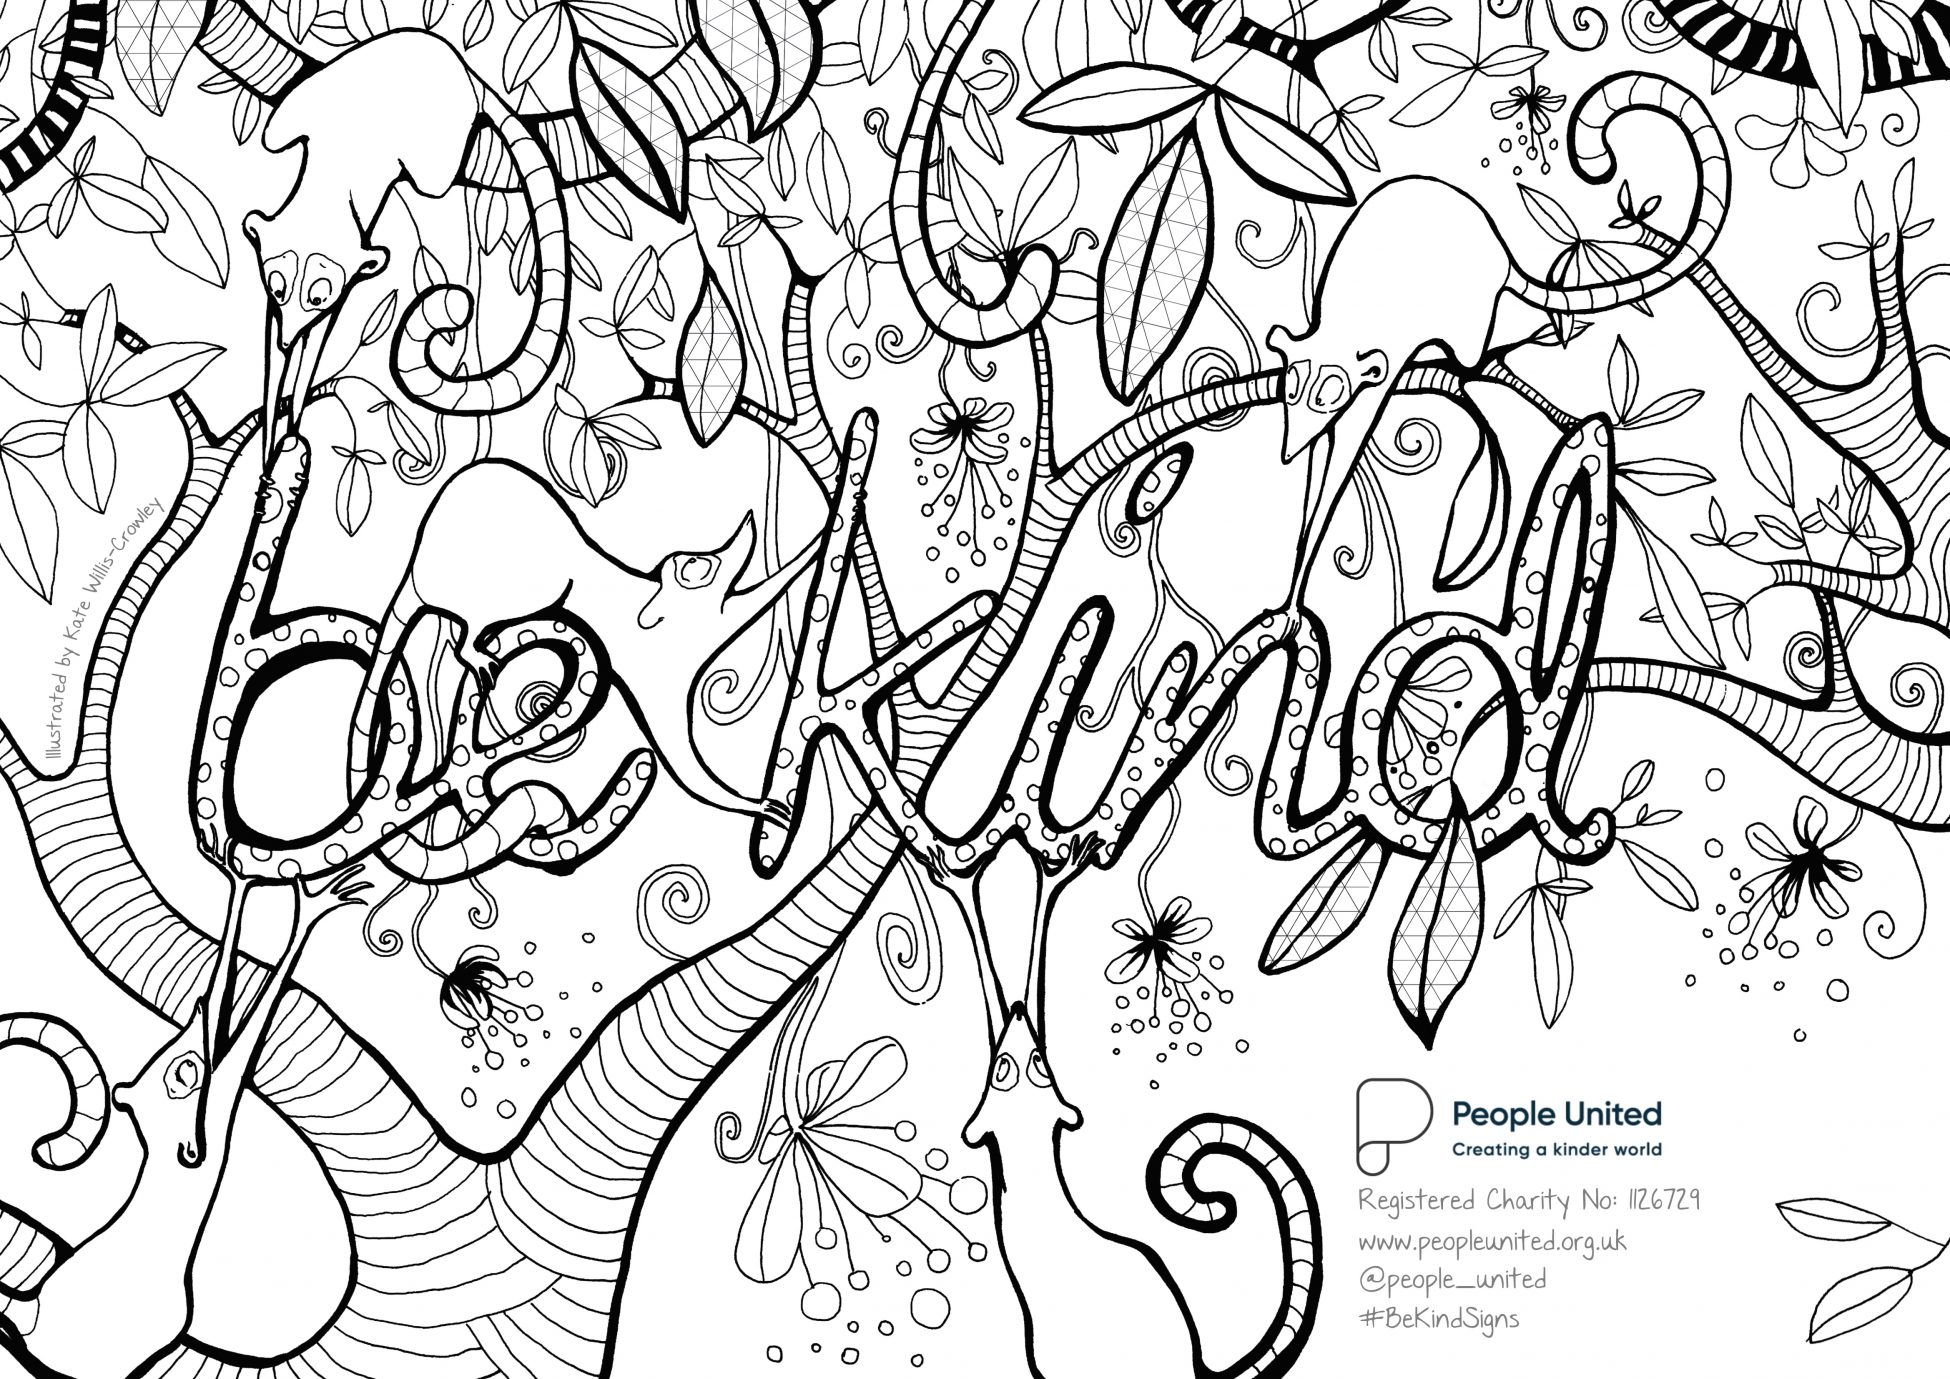 A black and white illustration/line drawing designed to be coloured in by the user. The words